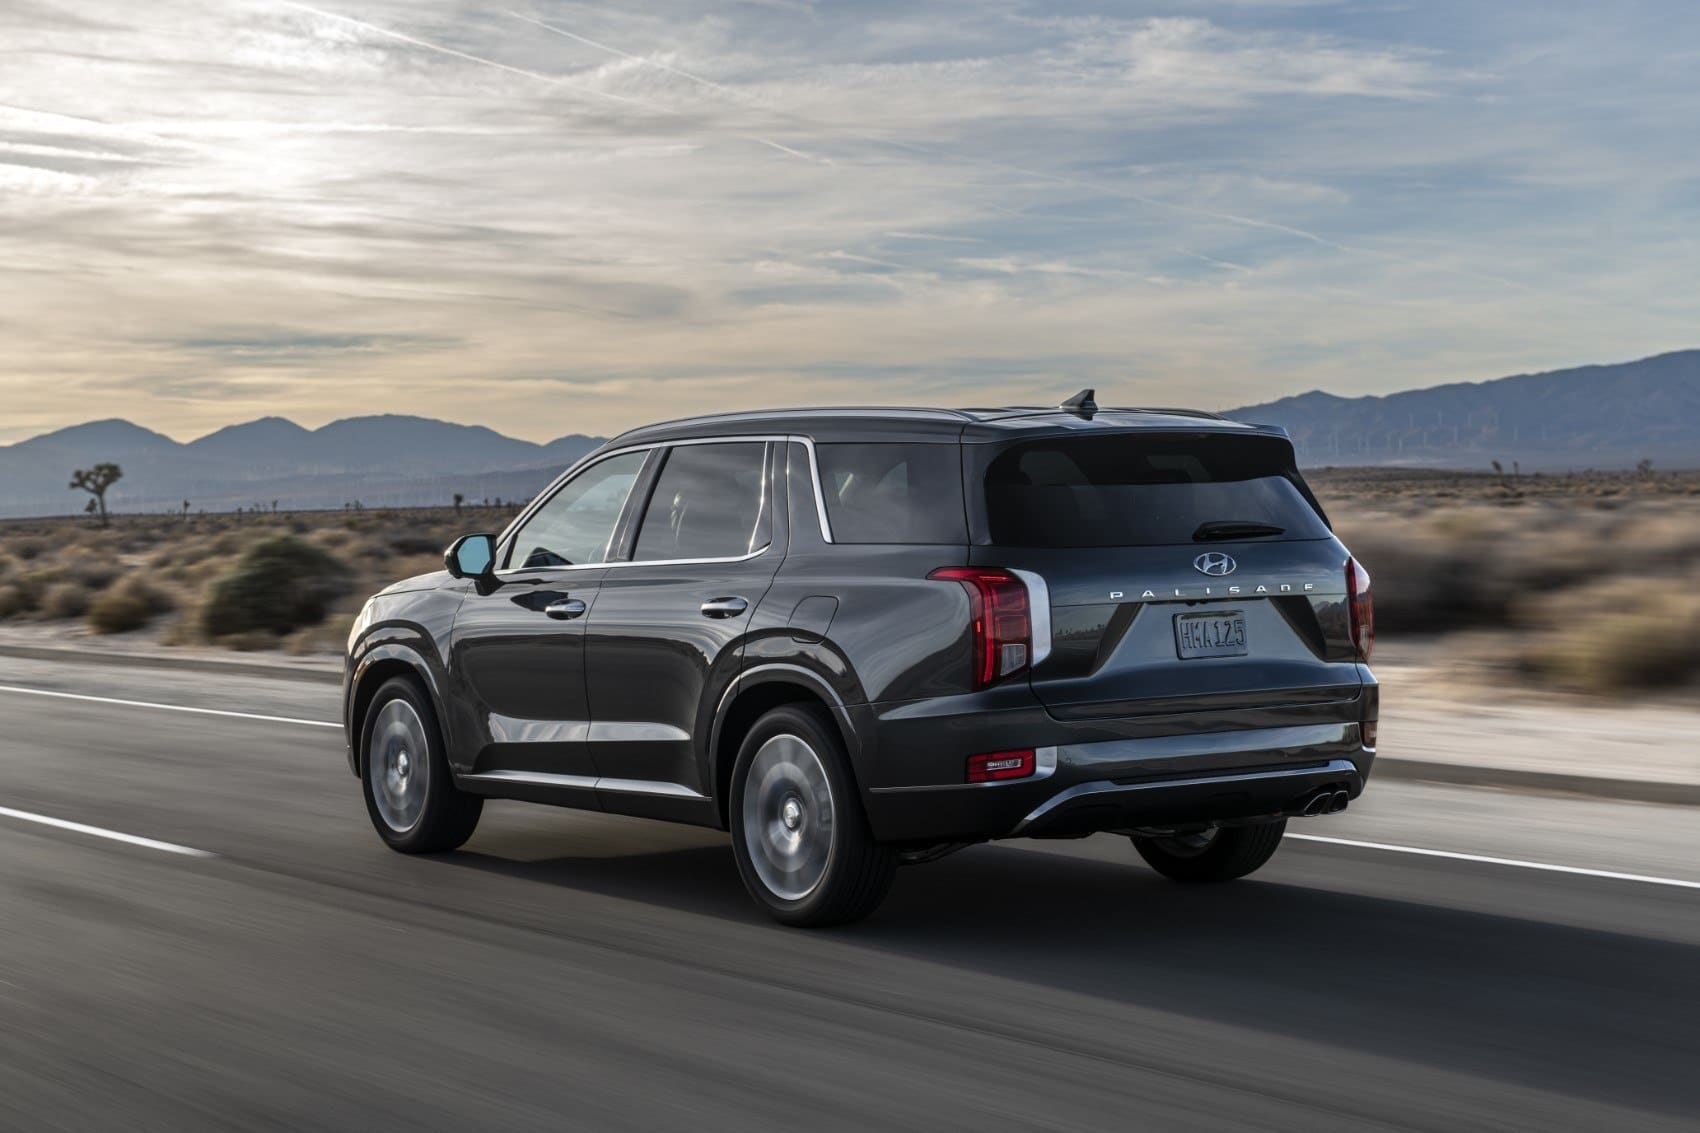 2020 Hyundai Palisade Review: How Hyundai's New SUV Stacks Up 15